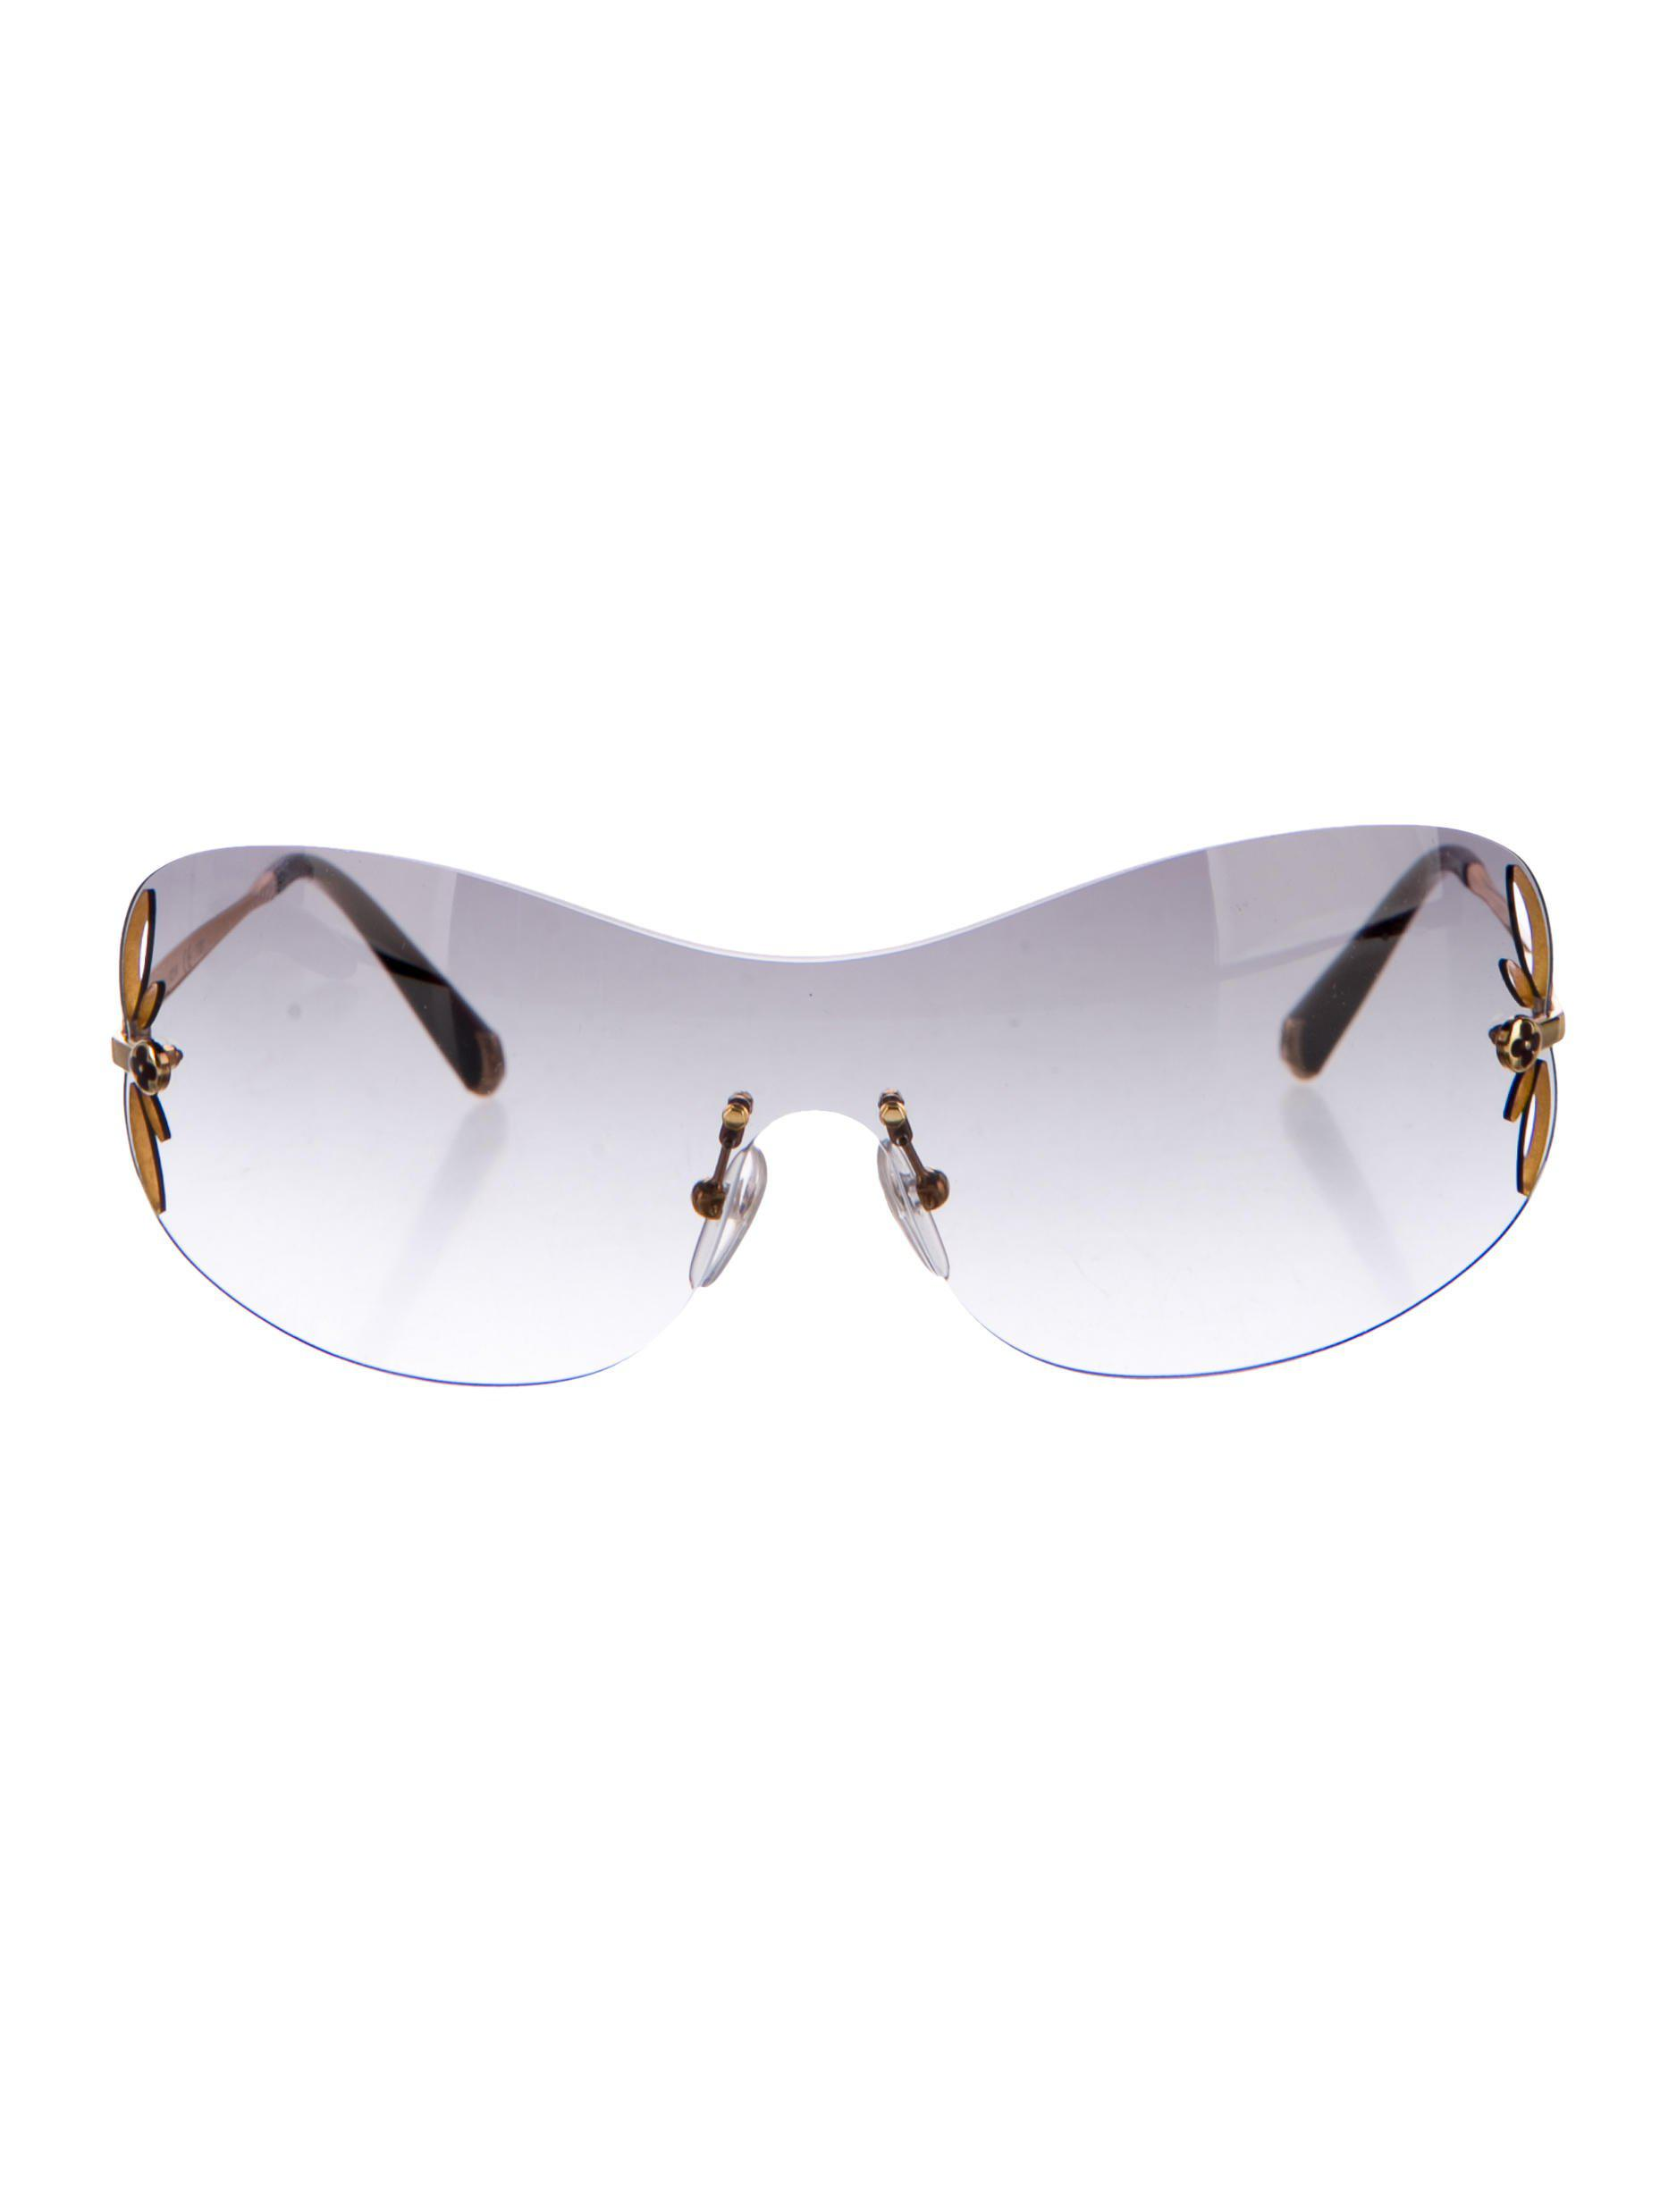 2208728c3603 Lyst - Louis Vuitton Lily Mask Sunglasses Gold in Metallic